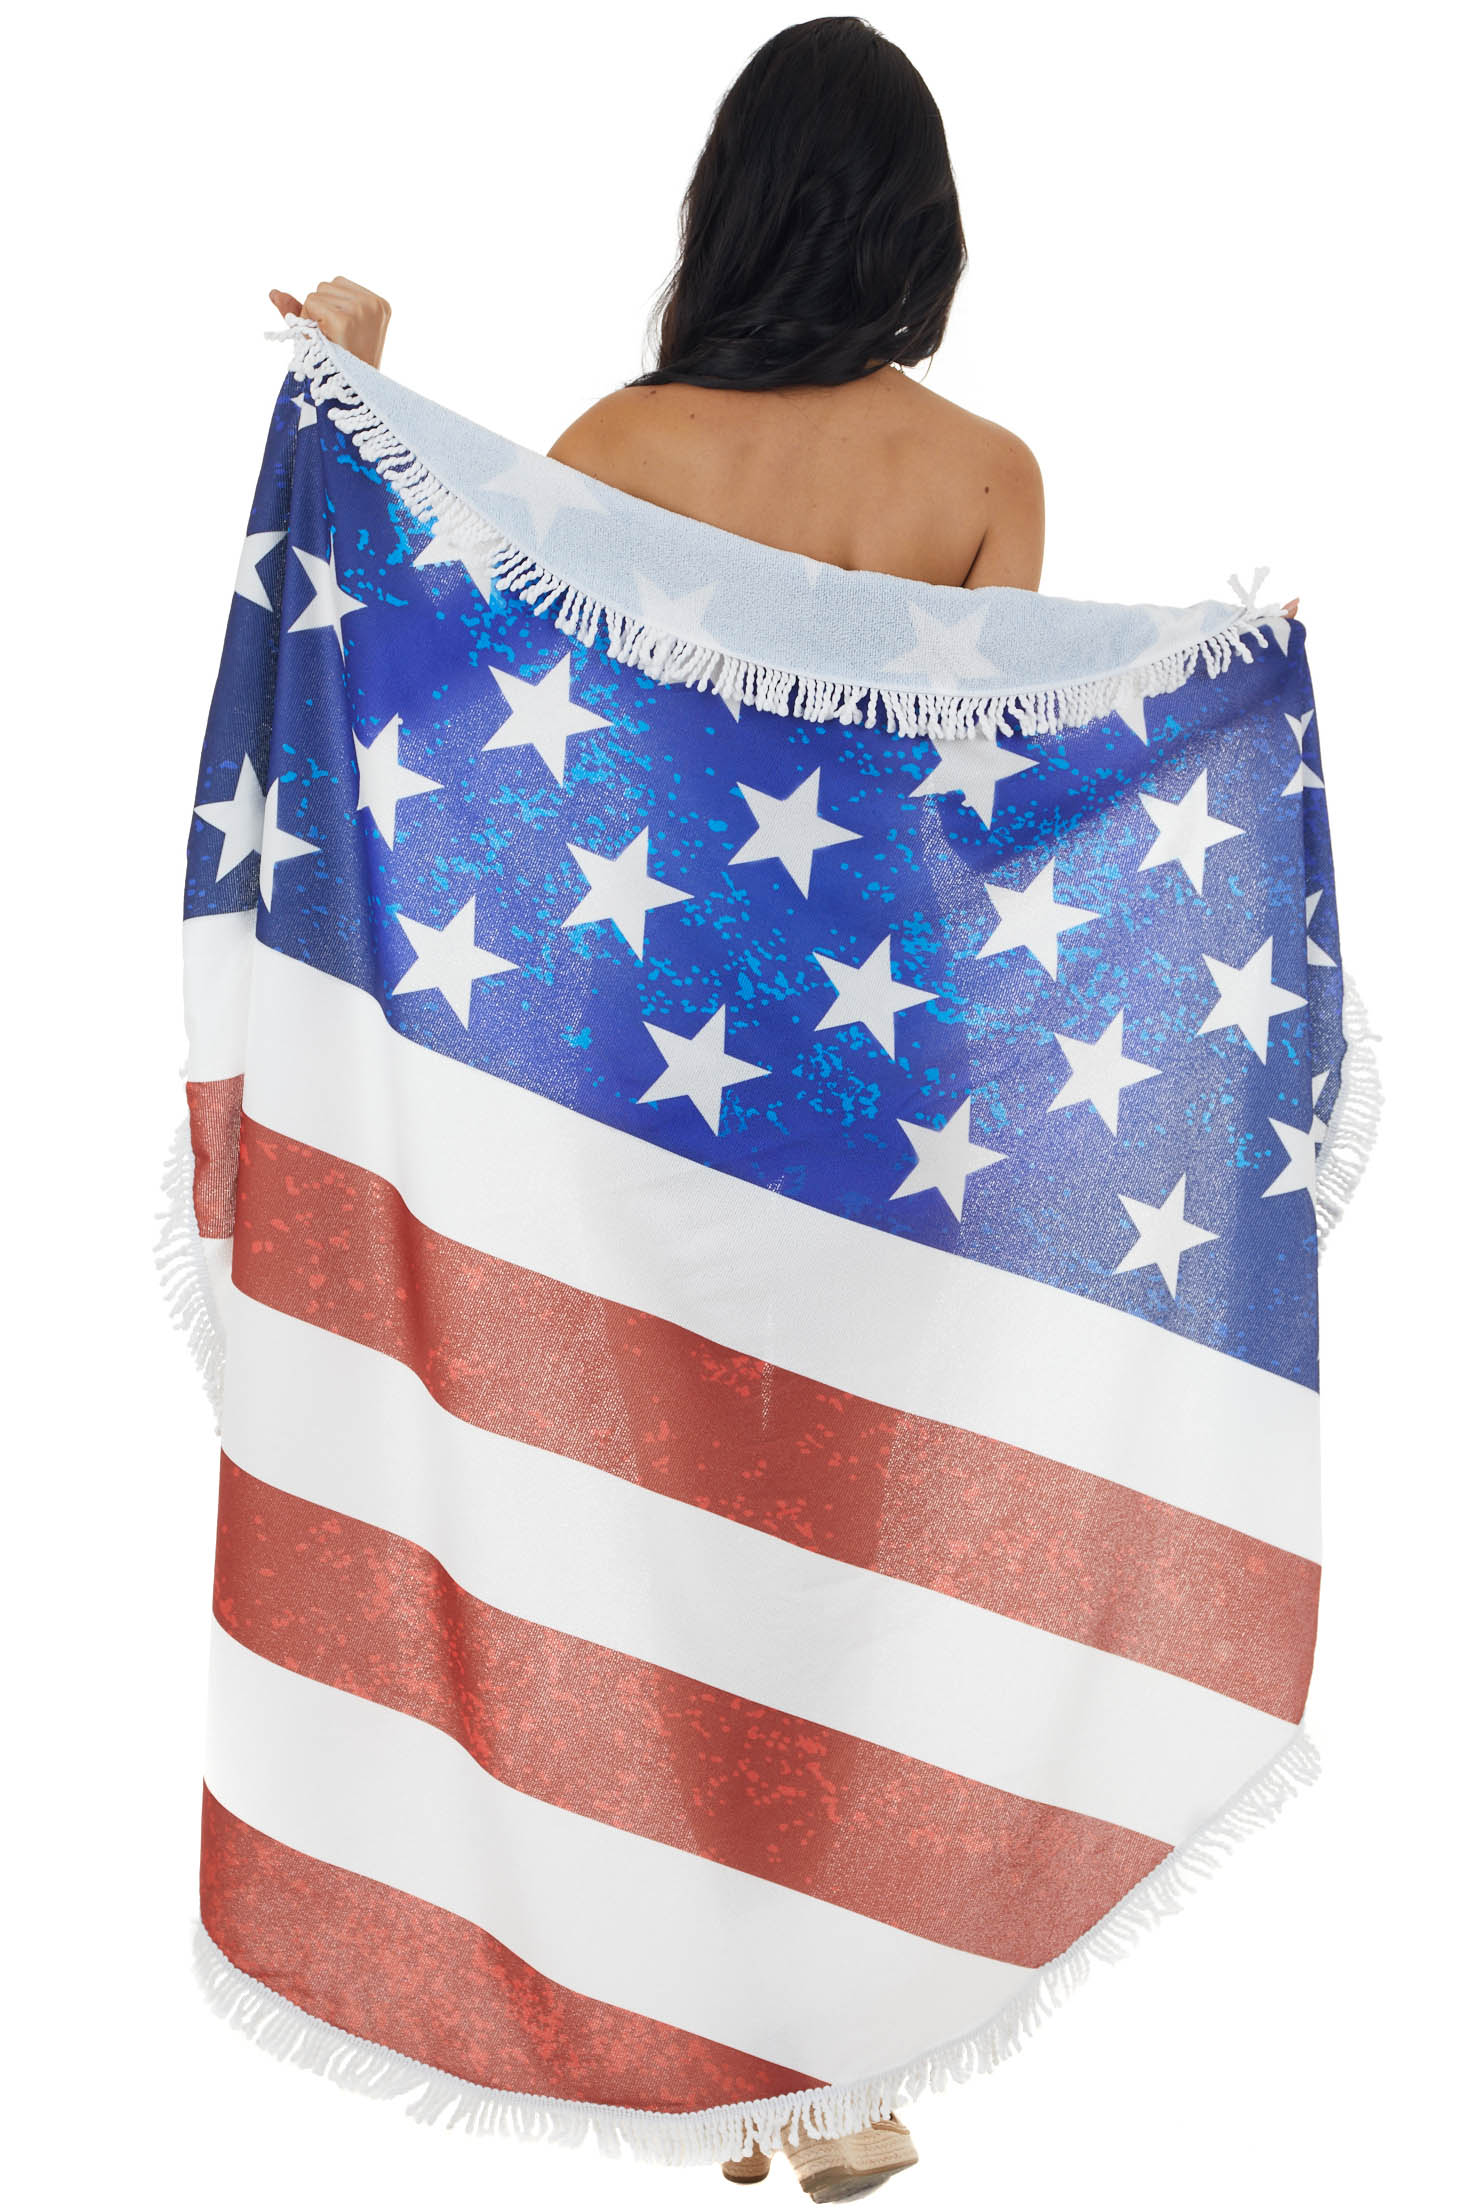 American Flag Print Rounded Beach Towel with Tassel Details